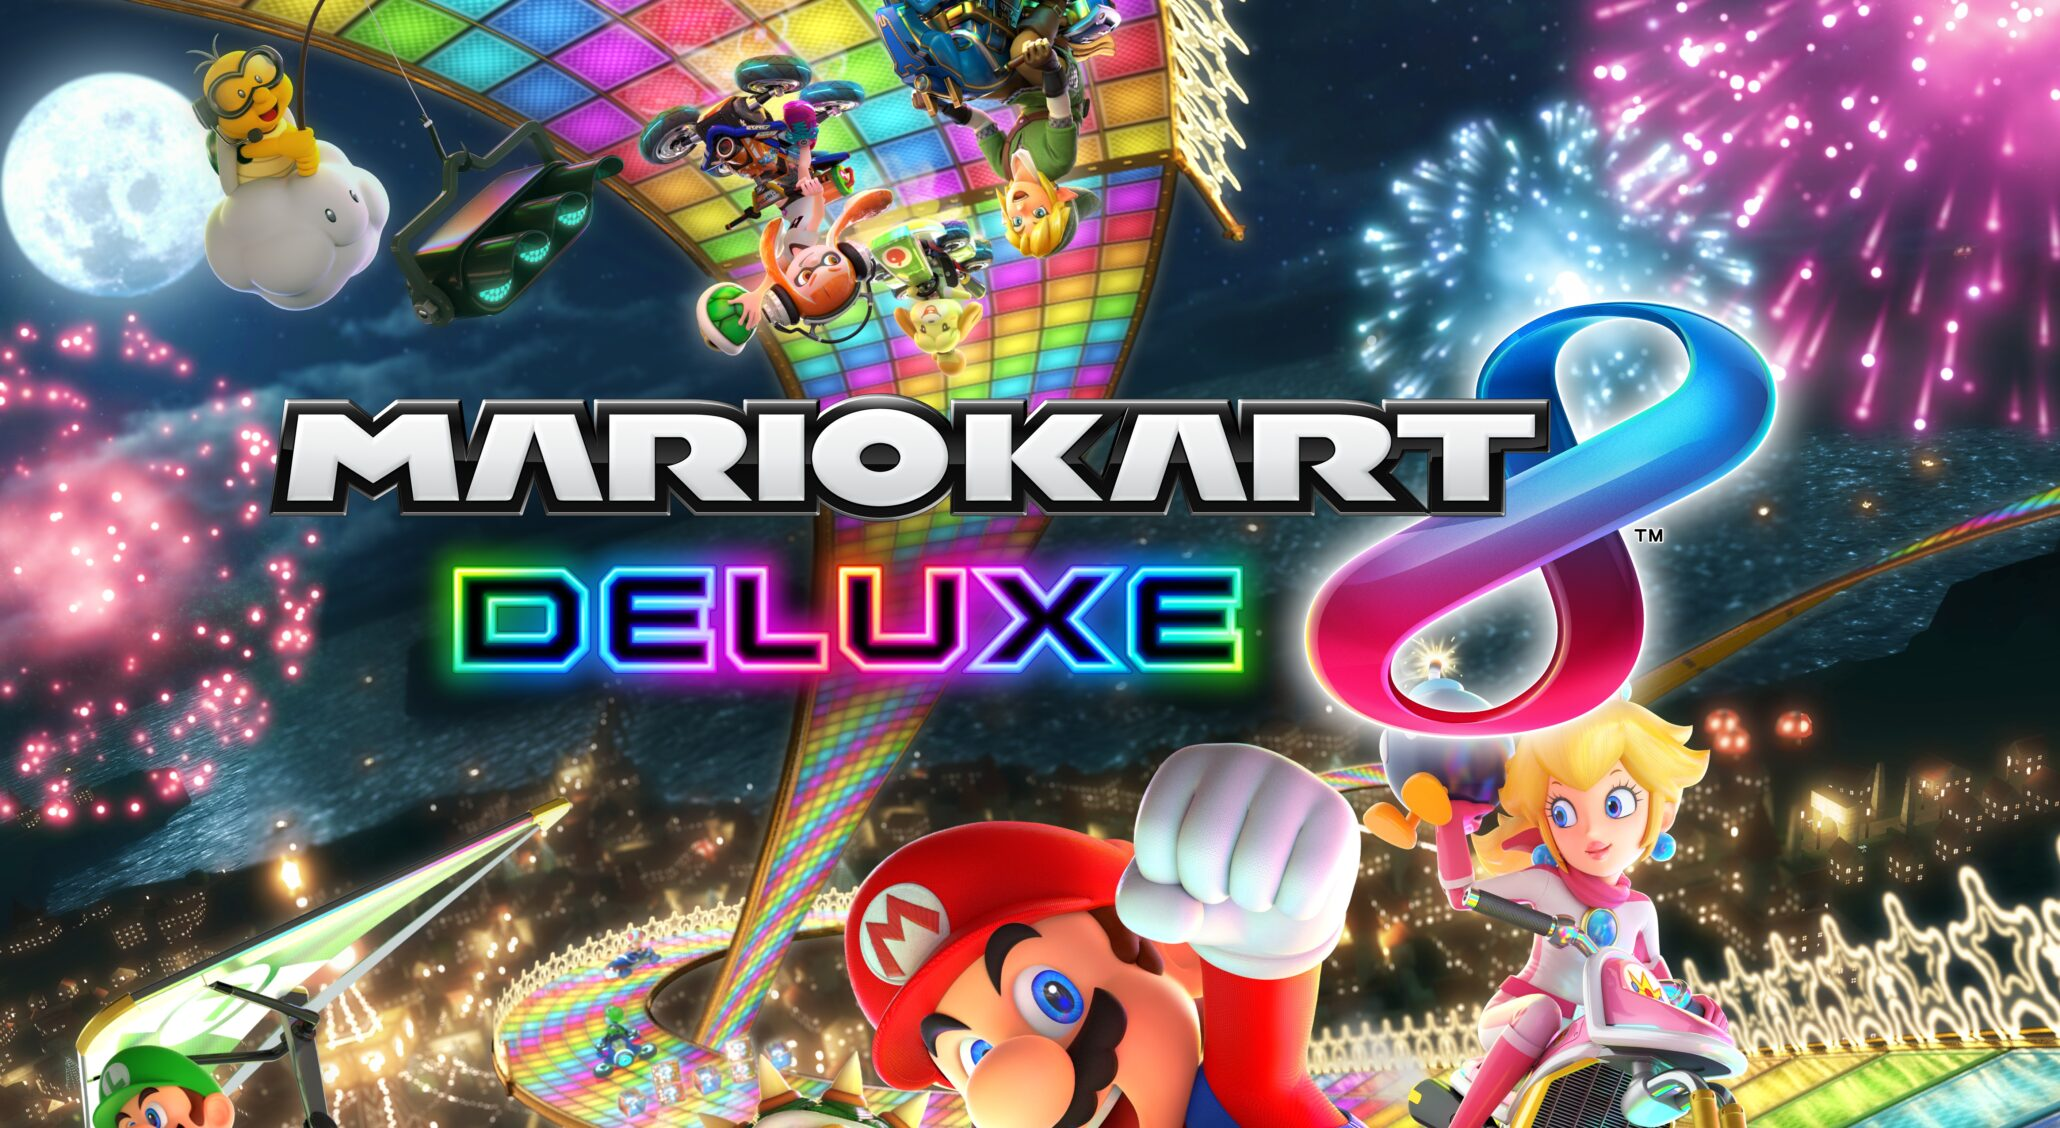 Mario Kart 8 Deluxe Releases April 28 Runs At 1080p Docked